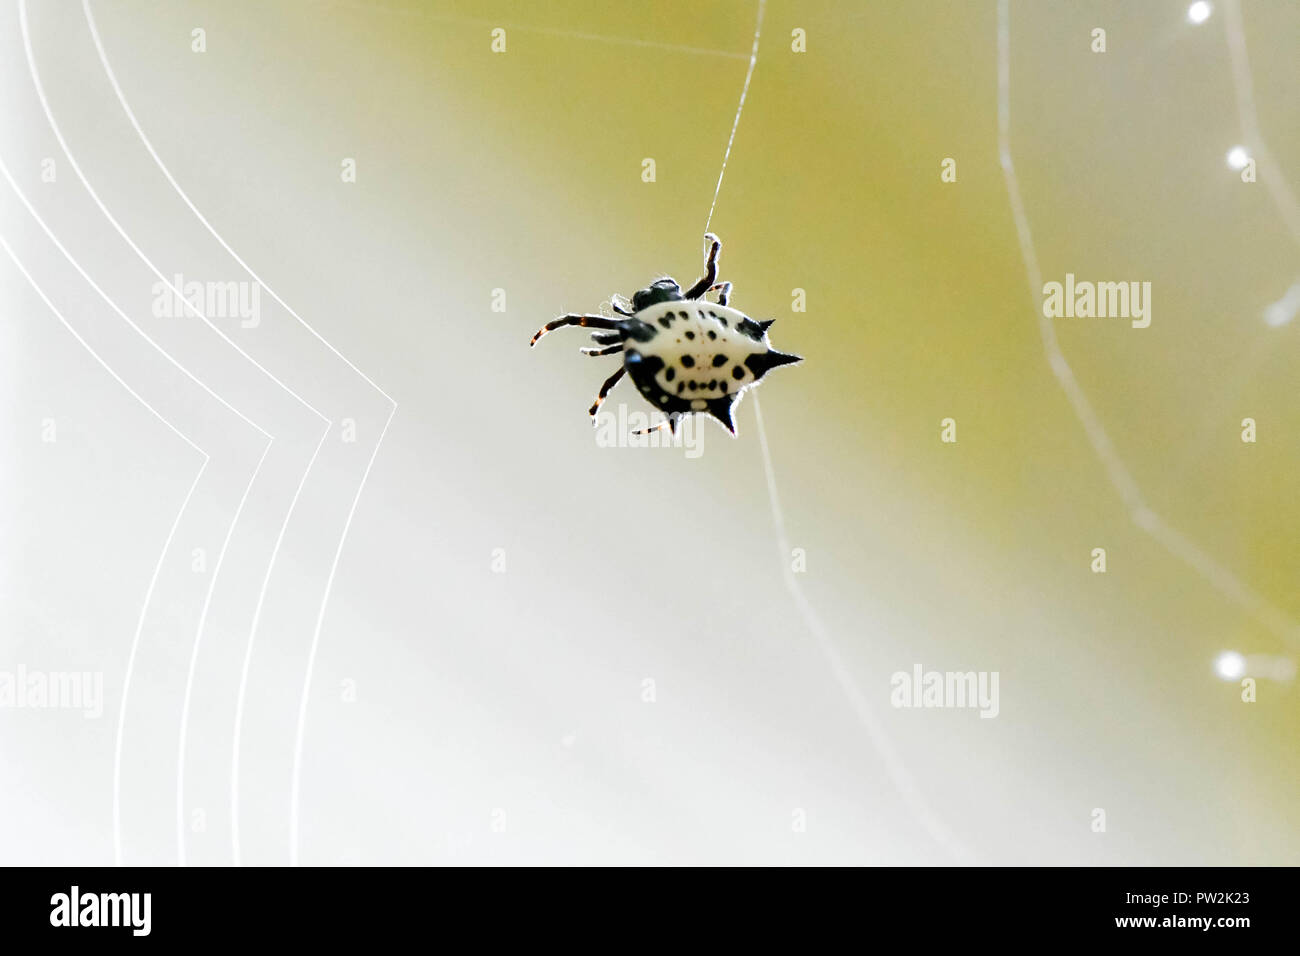 A spiny backed orb weaver spider spinning its web, Marietta, Georgia, USA - Stock Image